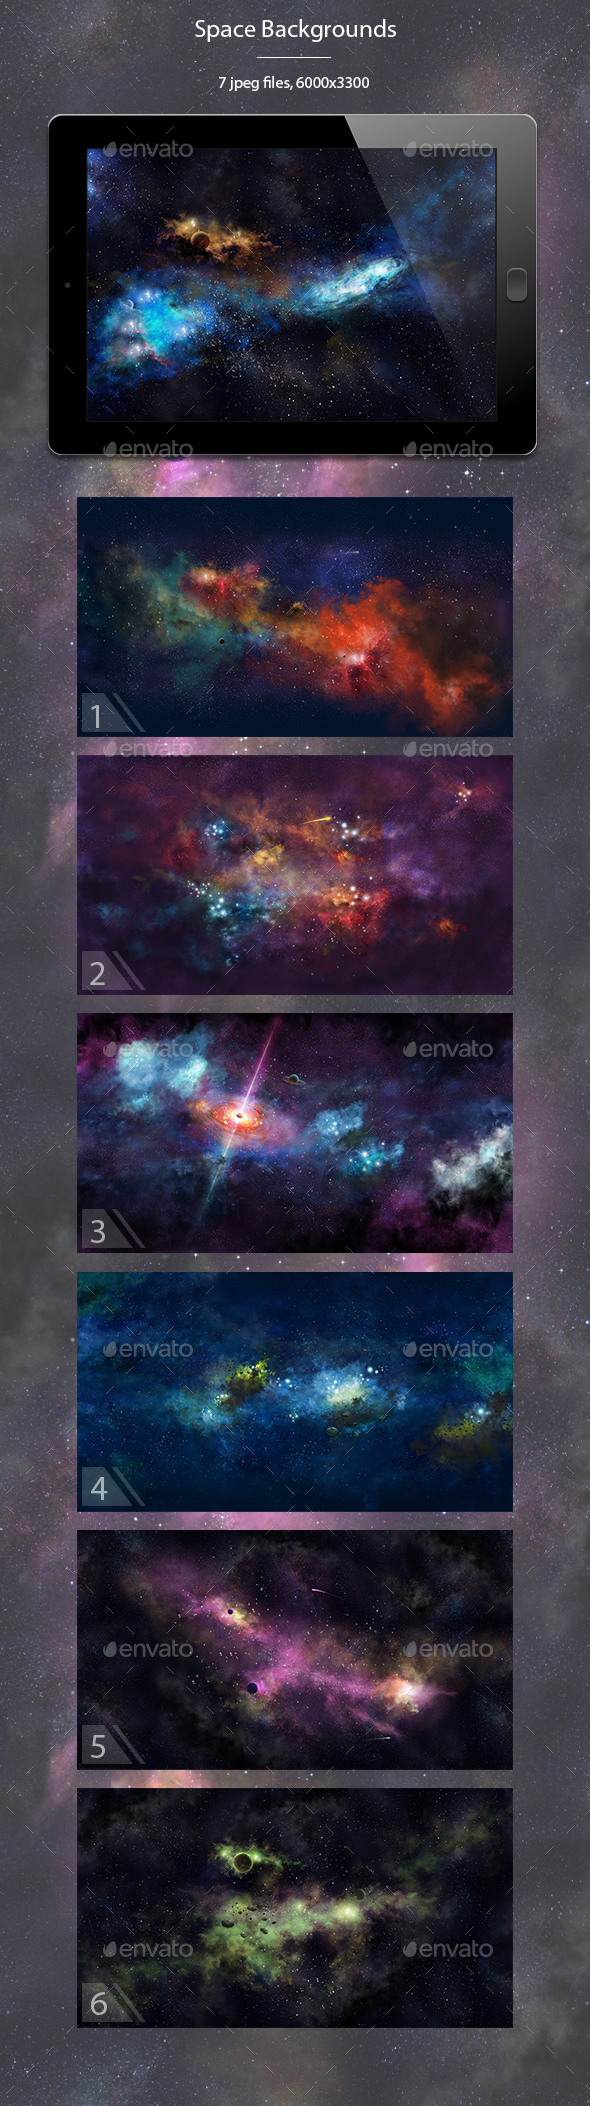 Space Backgrounds Illustrations - Abstract Backgrounds